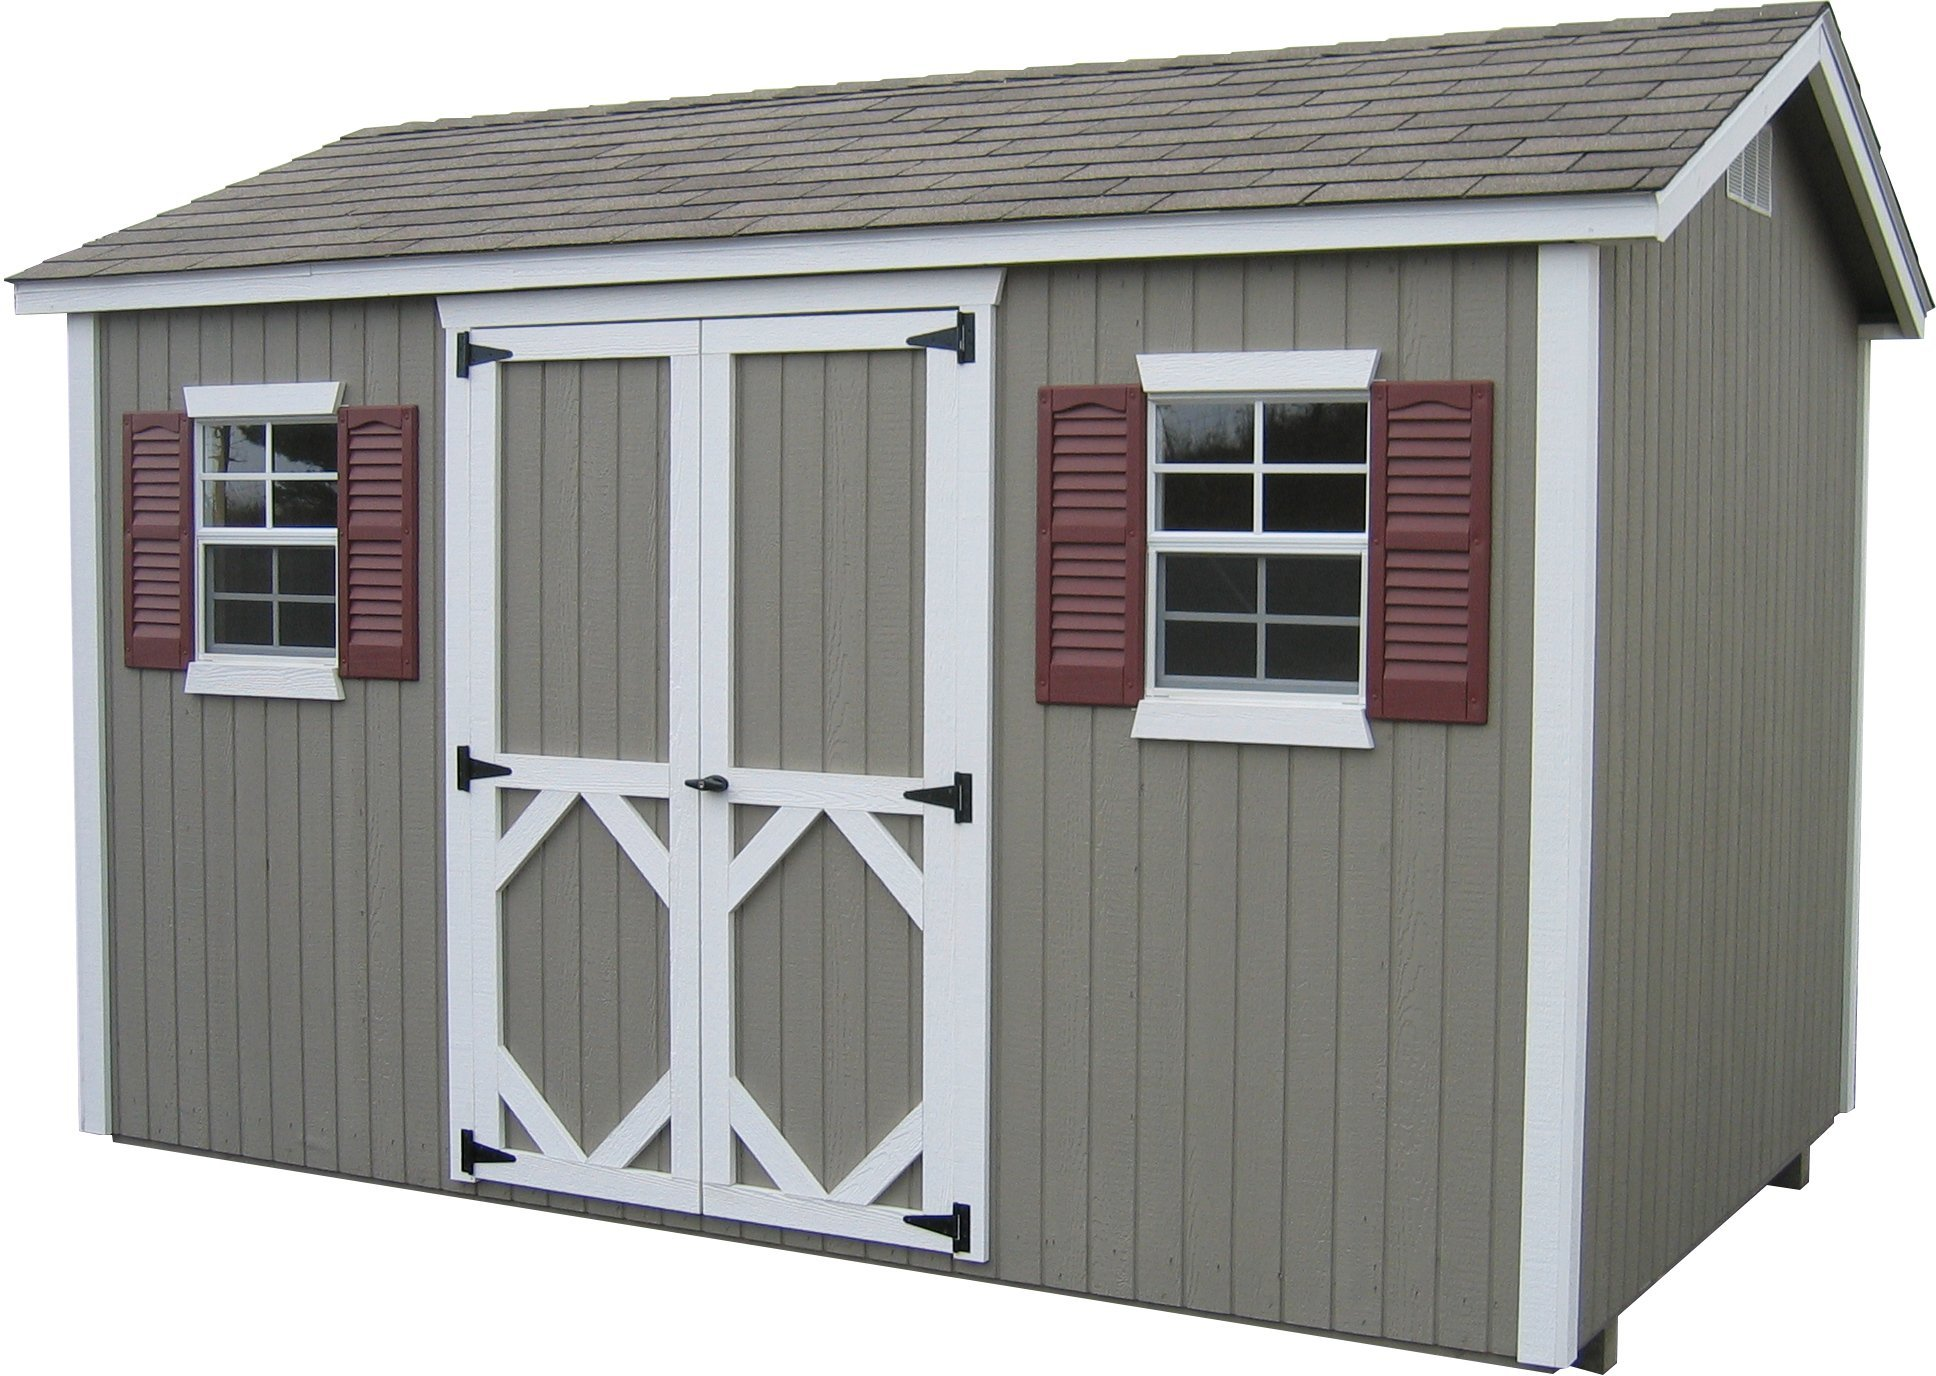 Little Cottage Company Classic Workshop DIY Playhouse Kit, 12' x 16'